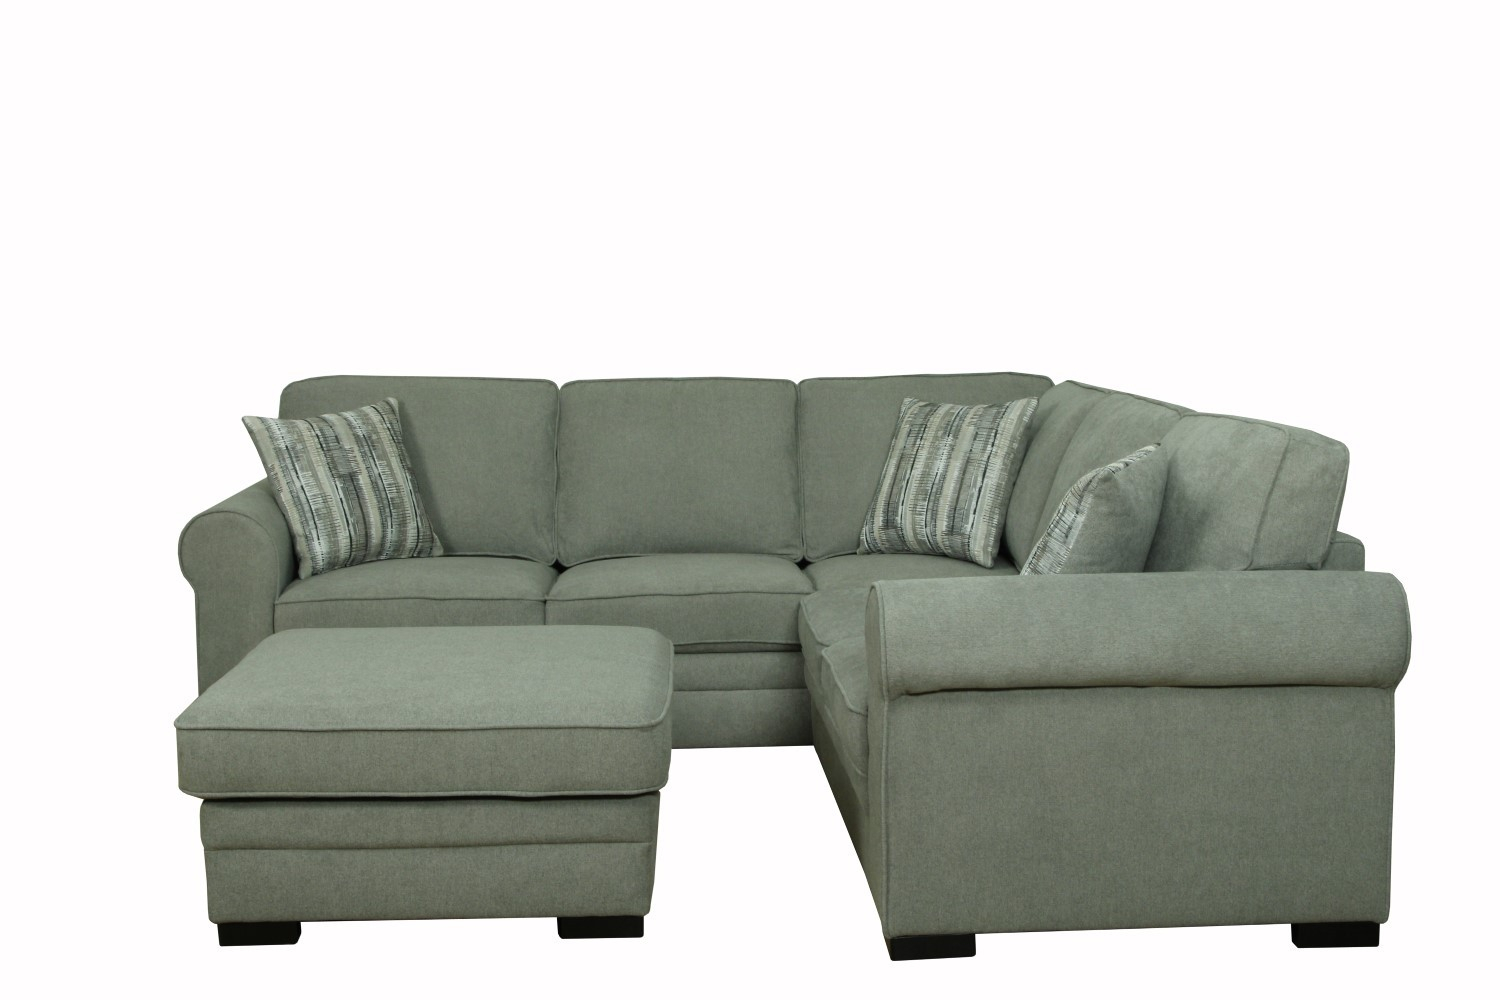 Abigail Right Facing Tux Sleeper Sectional | New Year's Sale On 500+ Within Abigail Ii Sofa Chairs (View 13 of 20)